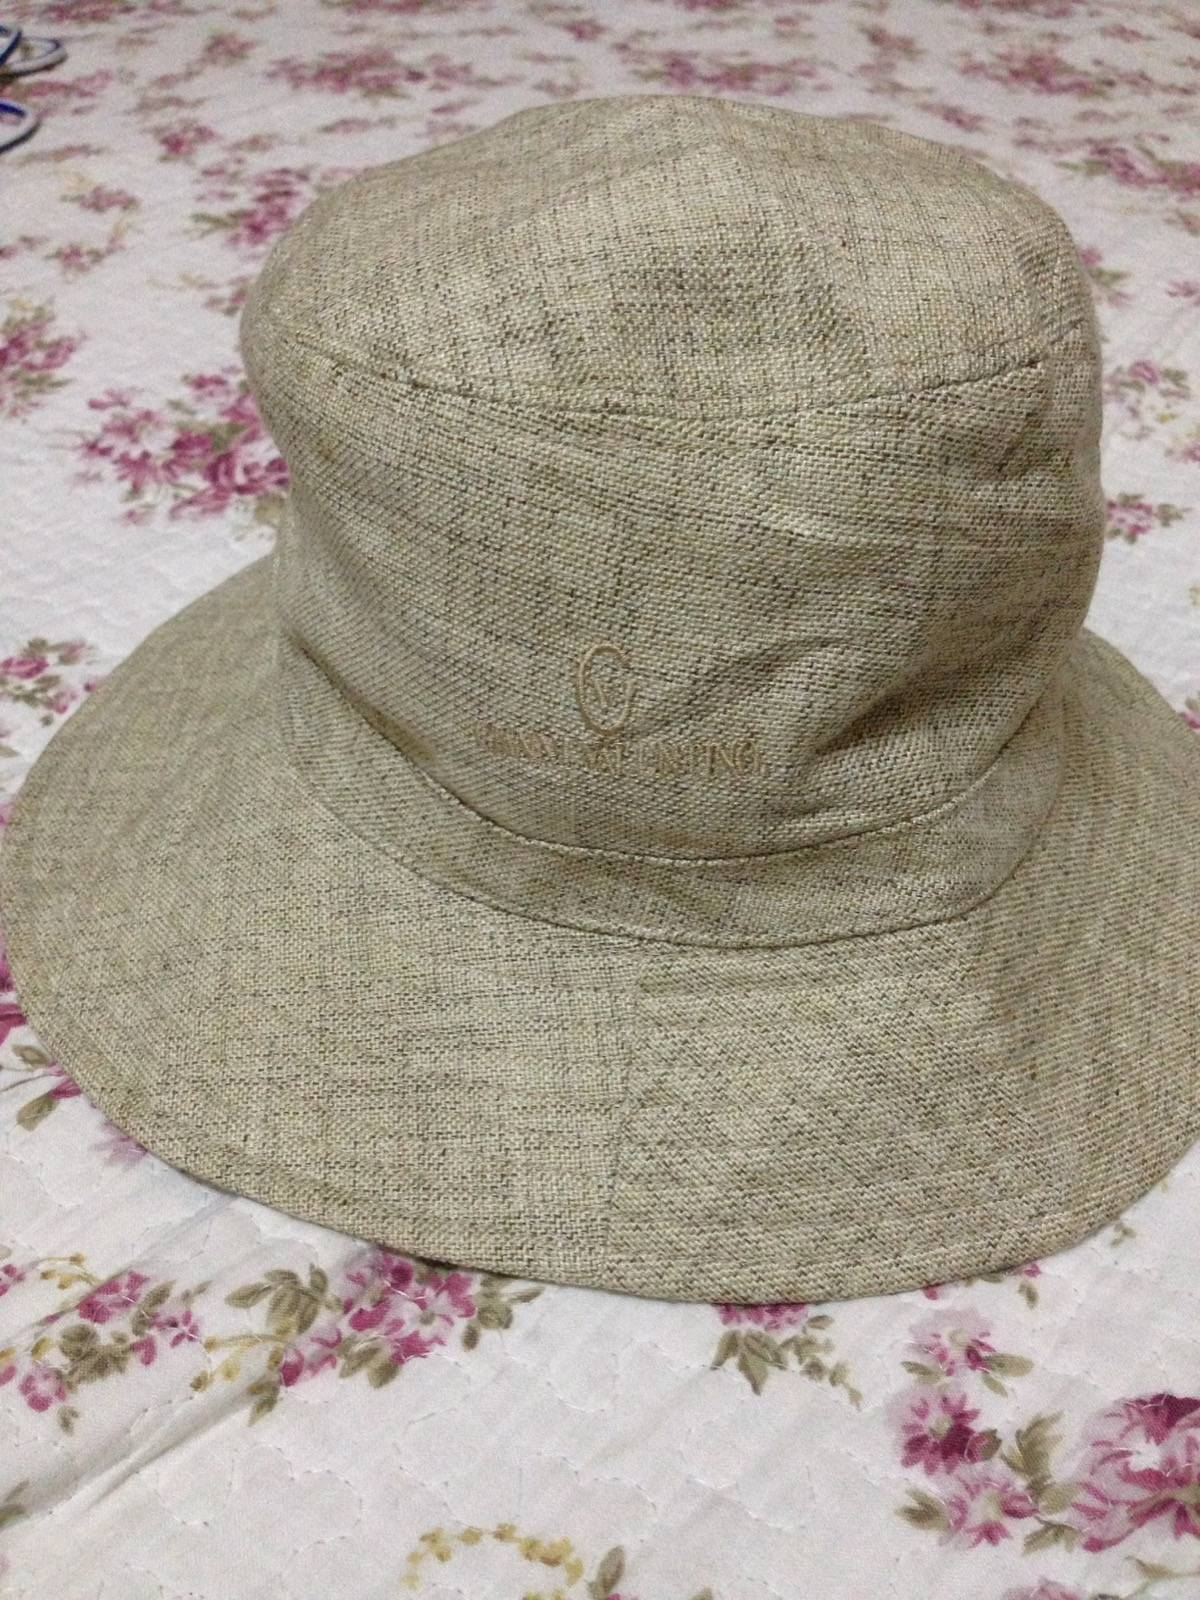 Valentino Gianni Valentino Bucket Hat Size one size - Hats for Sale ... 270e2a87afd